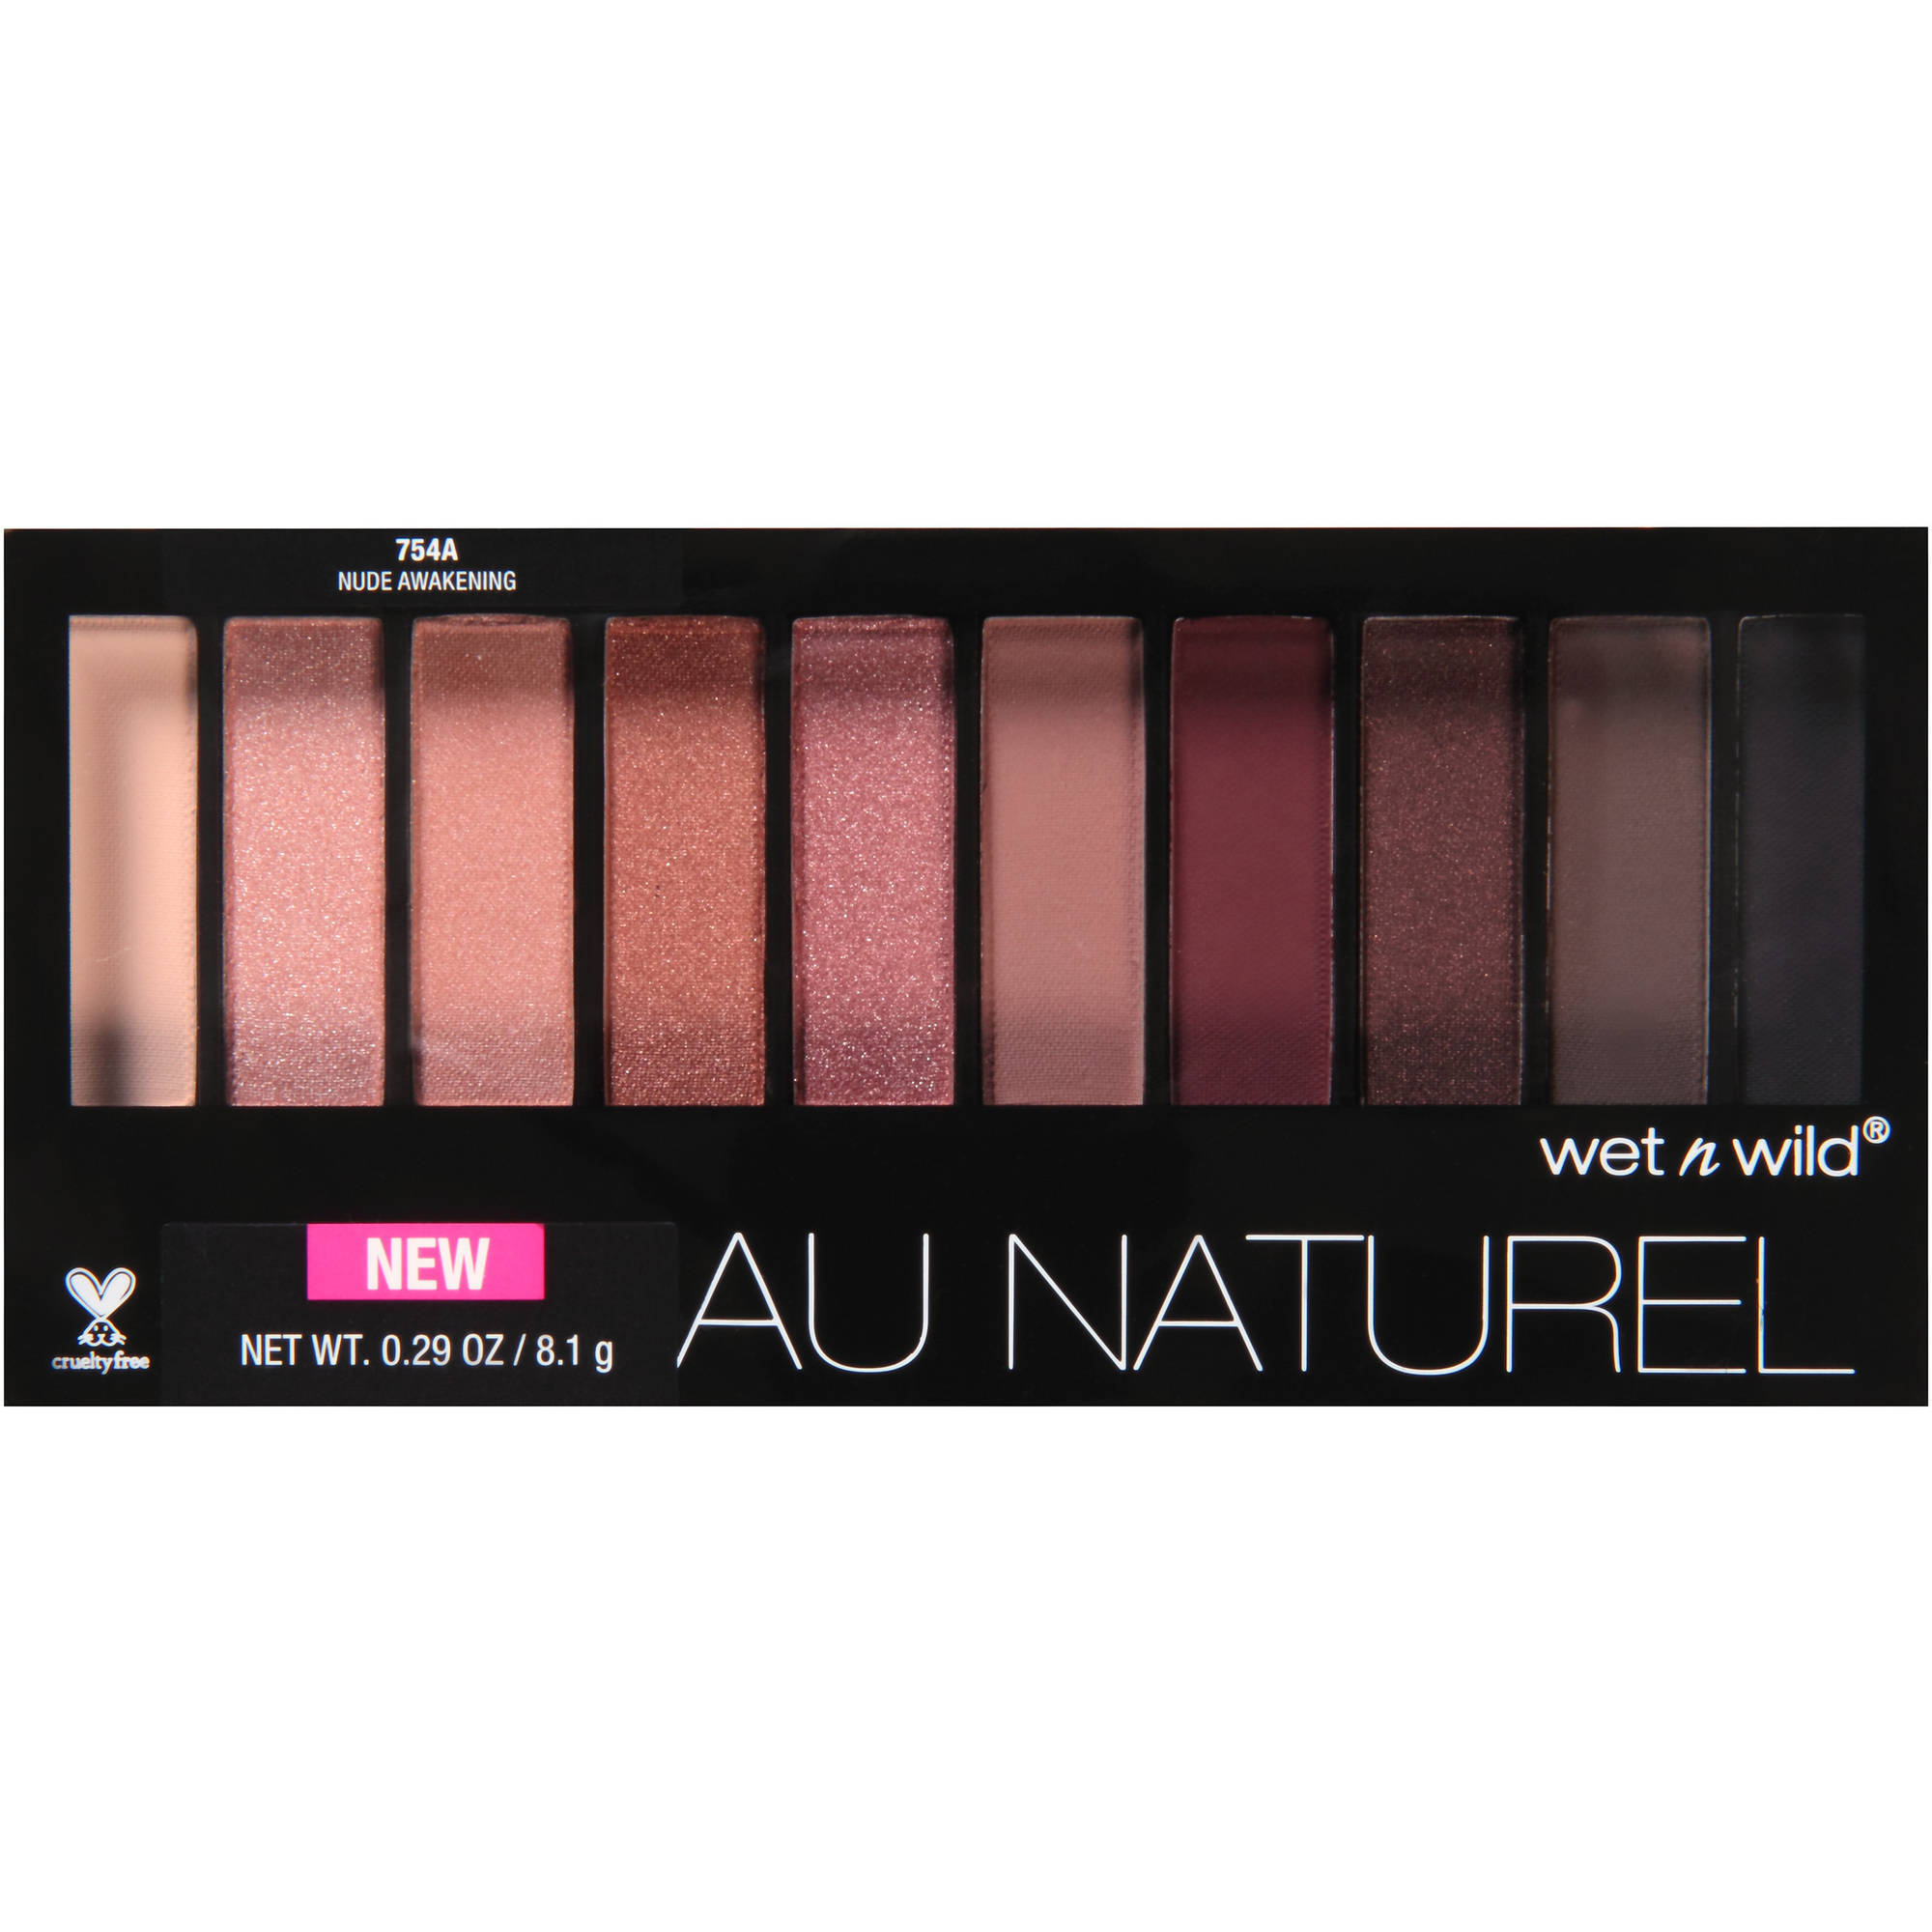 Wet n Wild Au Naturel Eye Shadow, 754A Nude Awakening, 0.29 oz